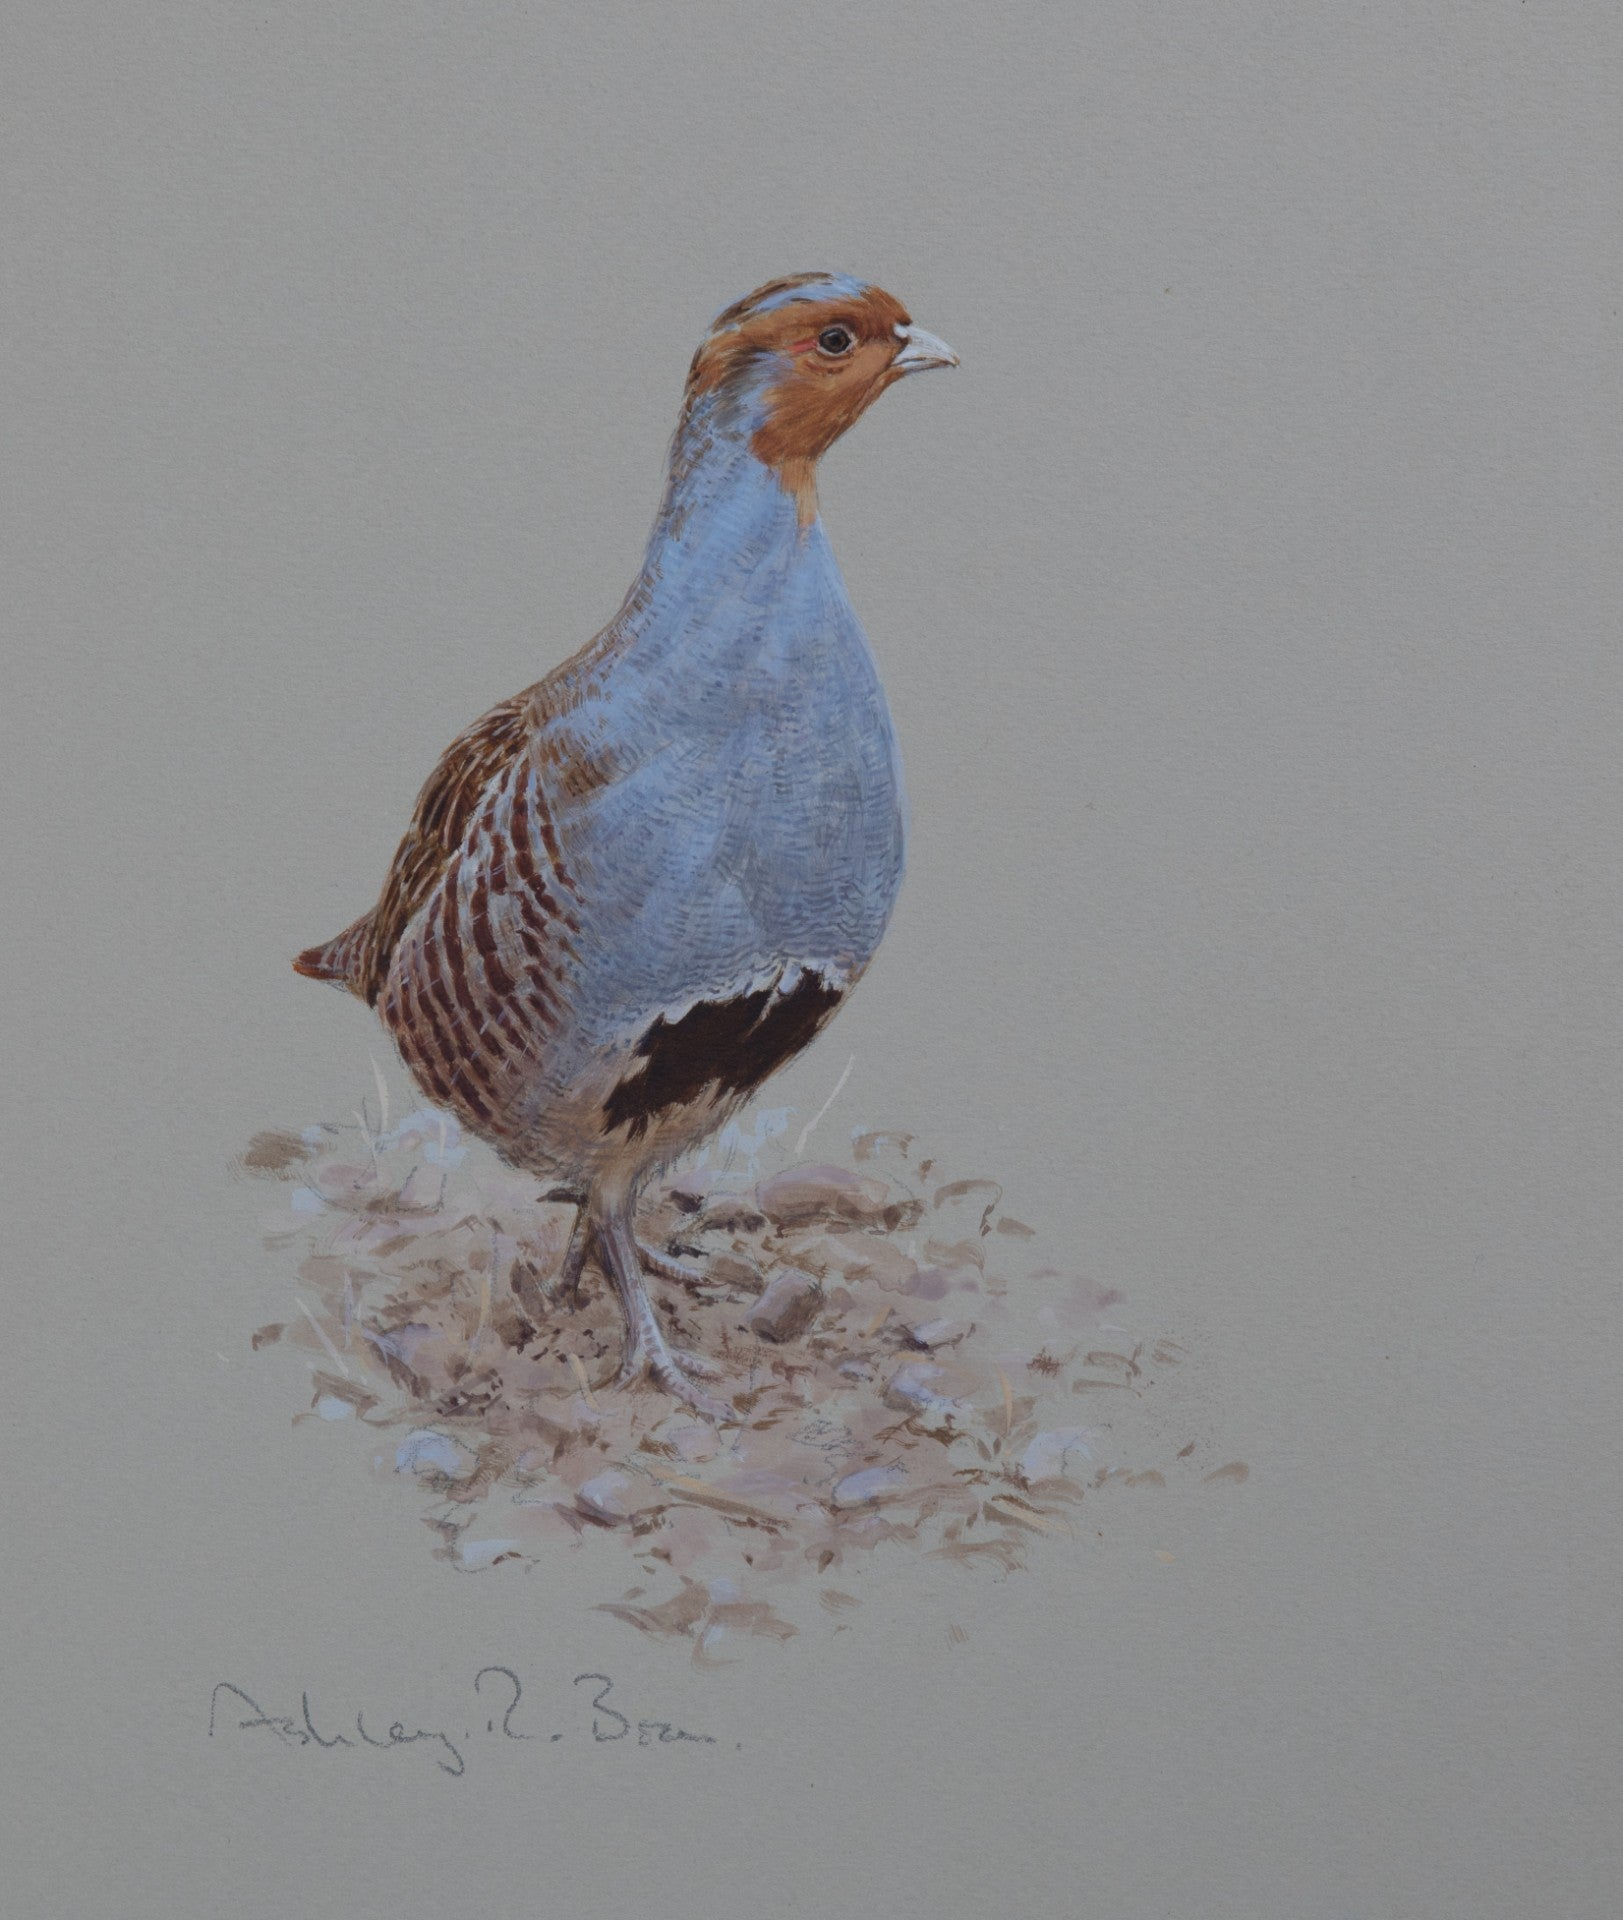 "'Grey Partridge Portrait' - Original Watercolour by Ashley Boon - 10"" x 8.5"""